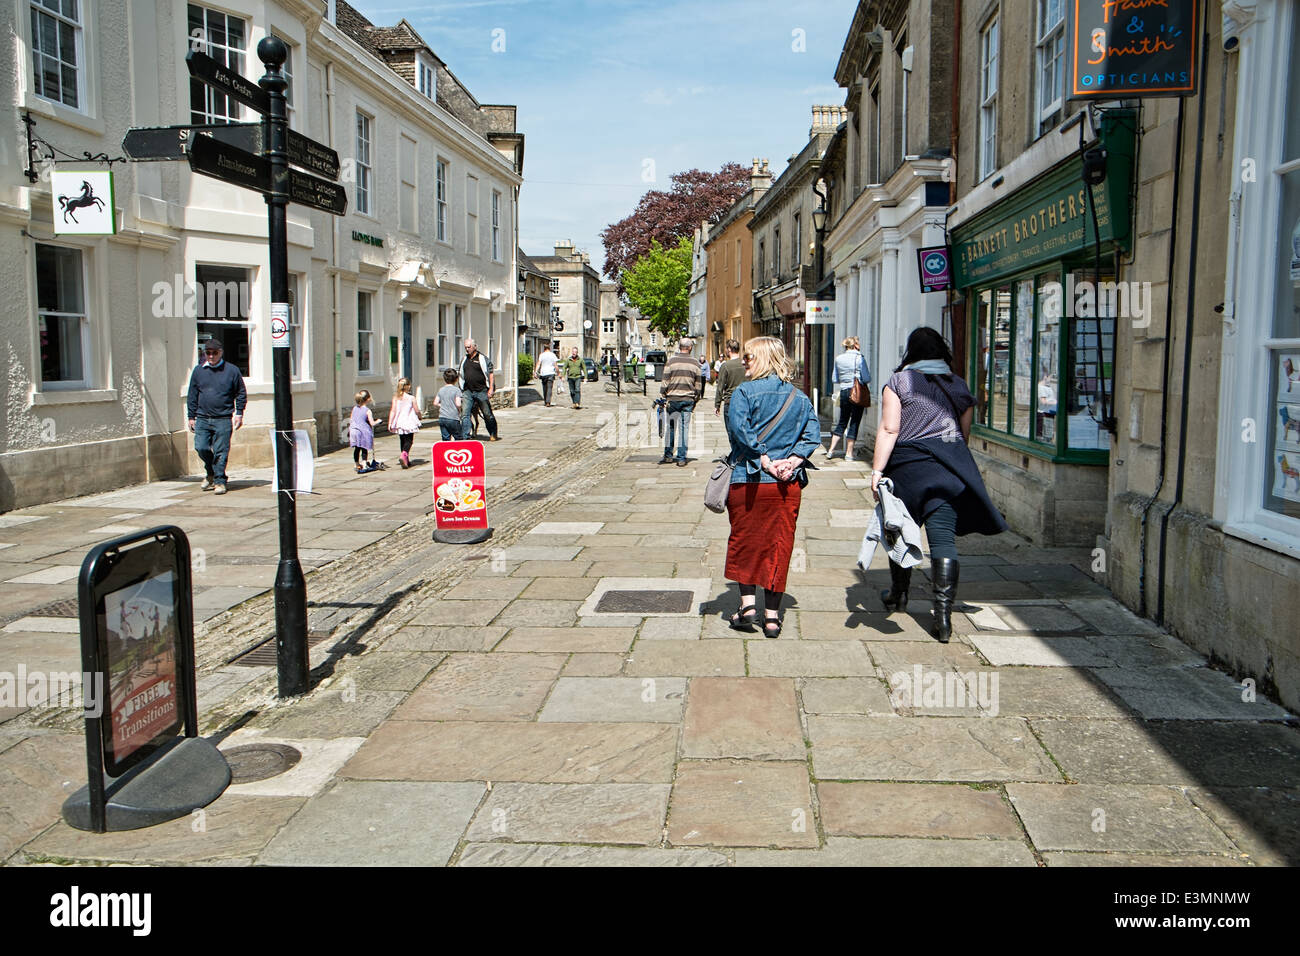 Visitors walking down the high Street in the town of Corsham, Wiltshire, Uk on a sunny day. Also a Location for Stock Photo